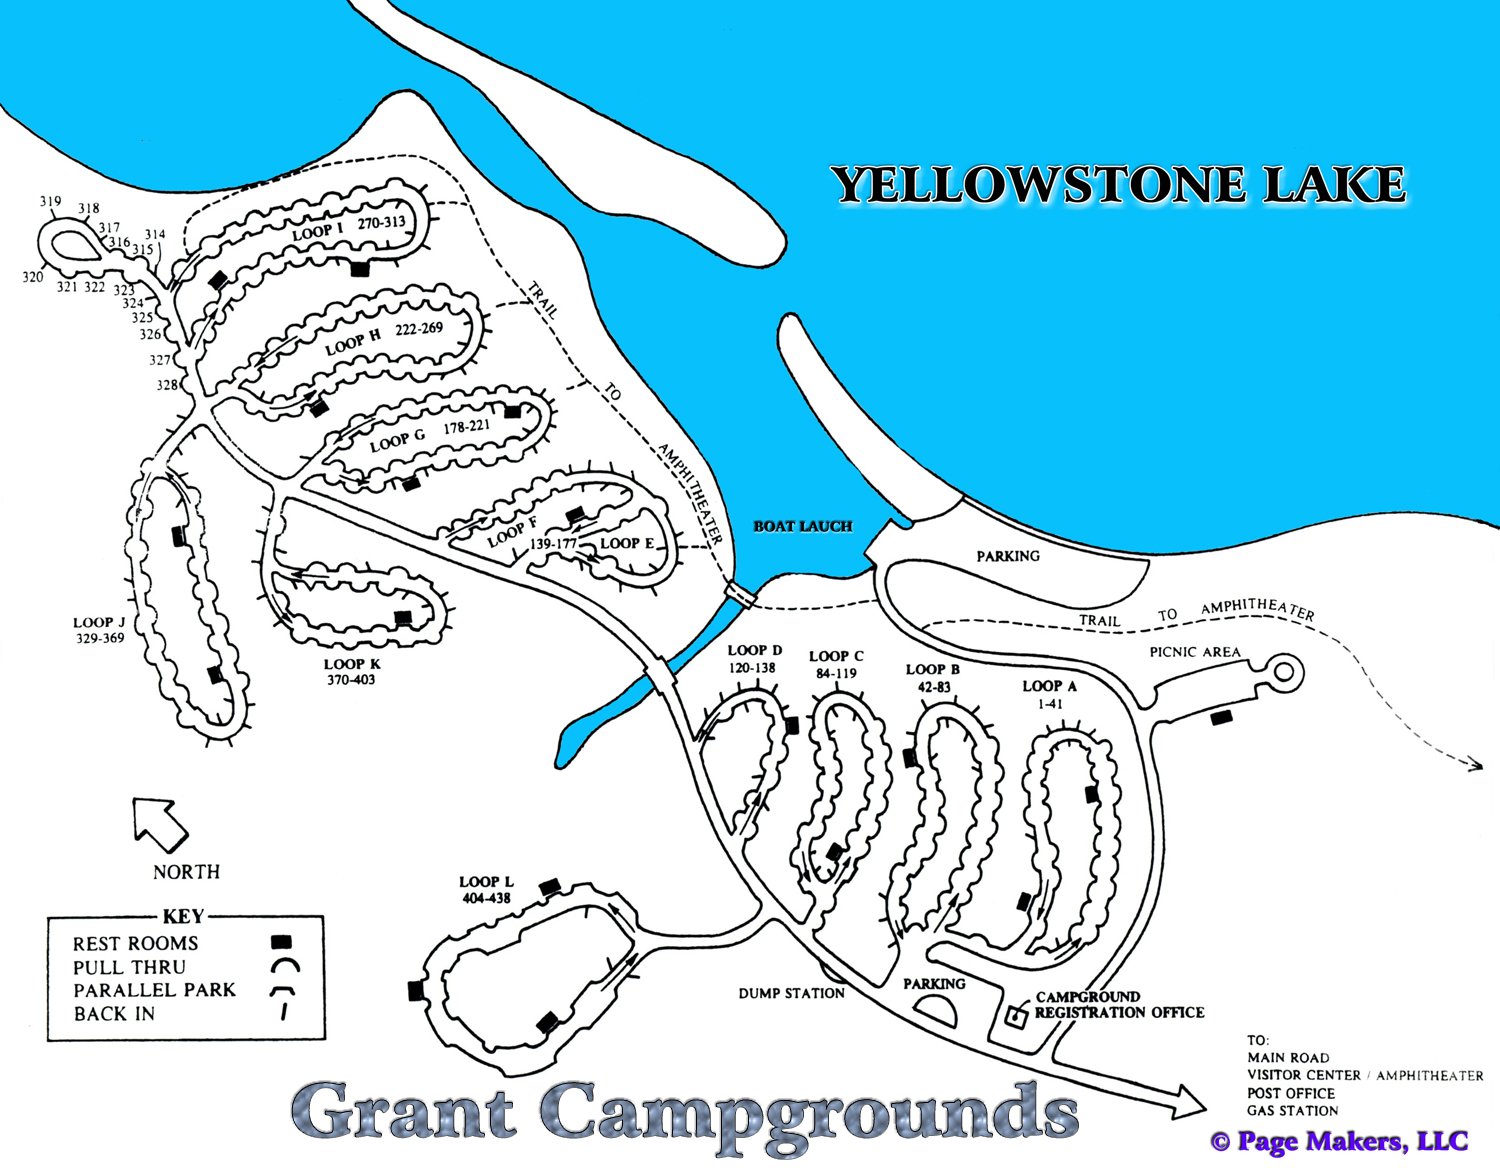 Map Of Yellowstone Campgrounds Grant Campground Map, Pictures and Video Yellowstone National Park  Map Of Yellowstone Campgrounds